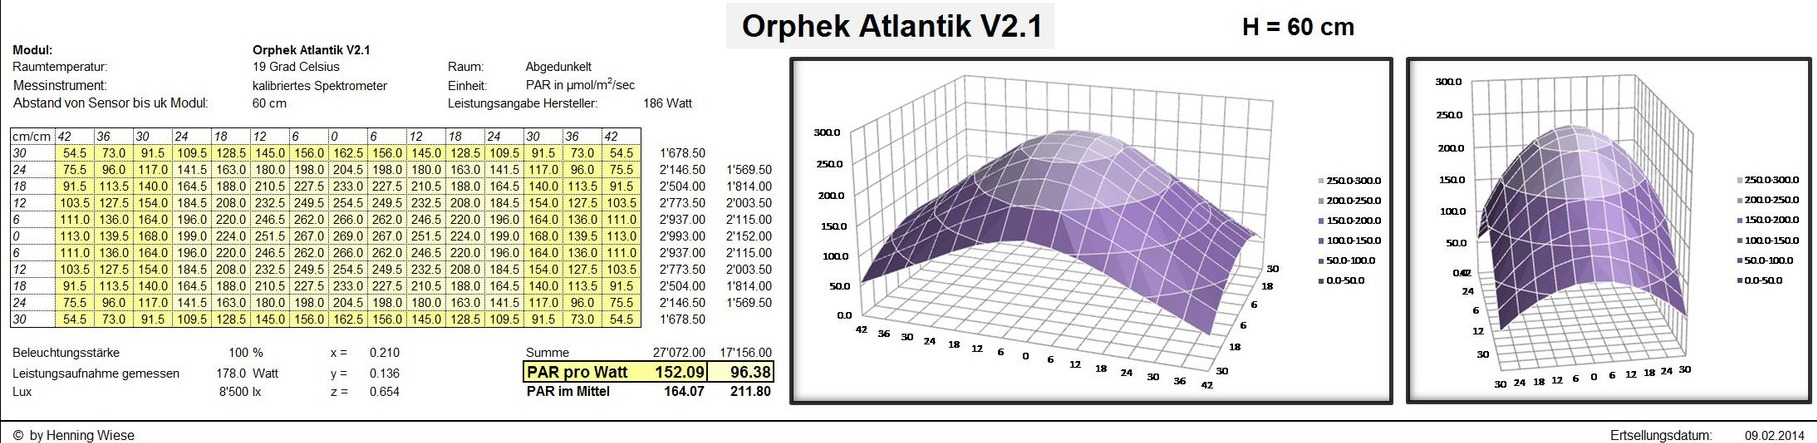 Orphek Atlantik V2.1 LED-Leuchte-PAR MAP-PAR pro Watt